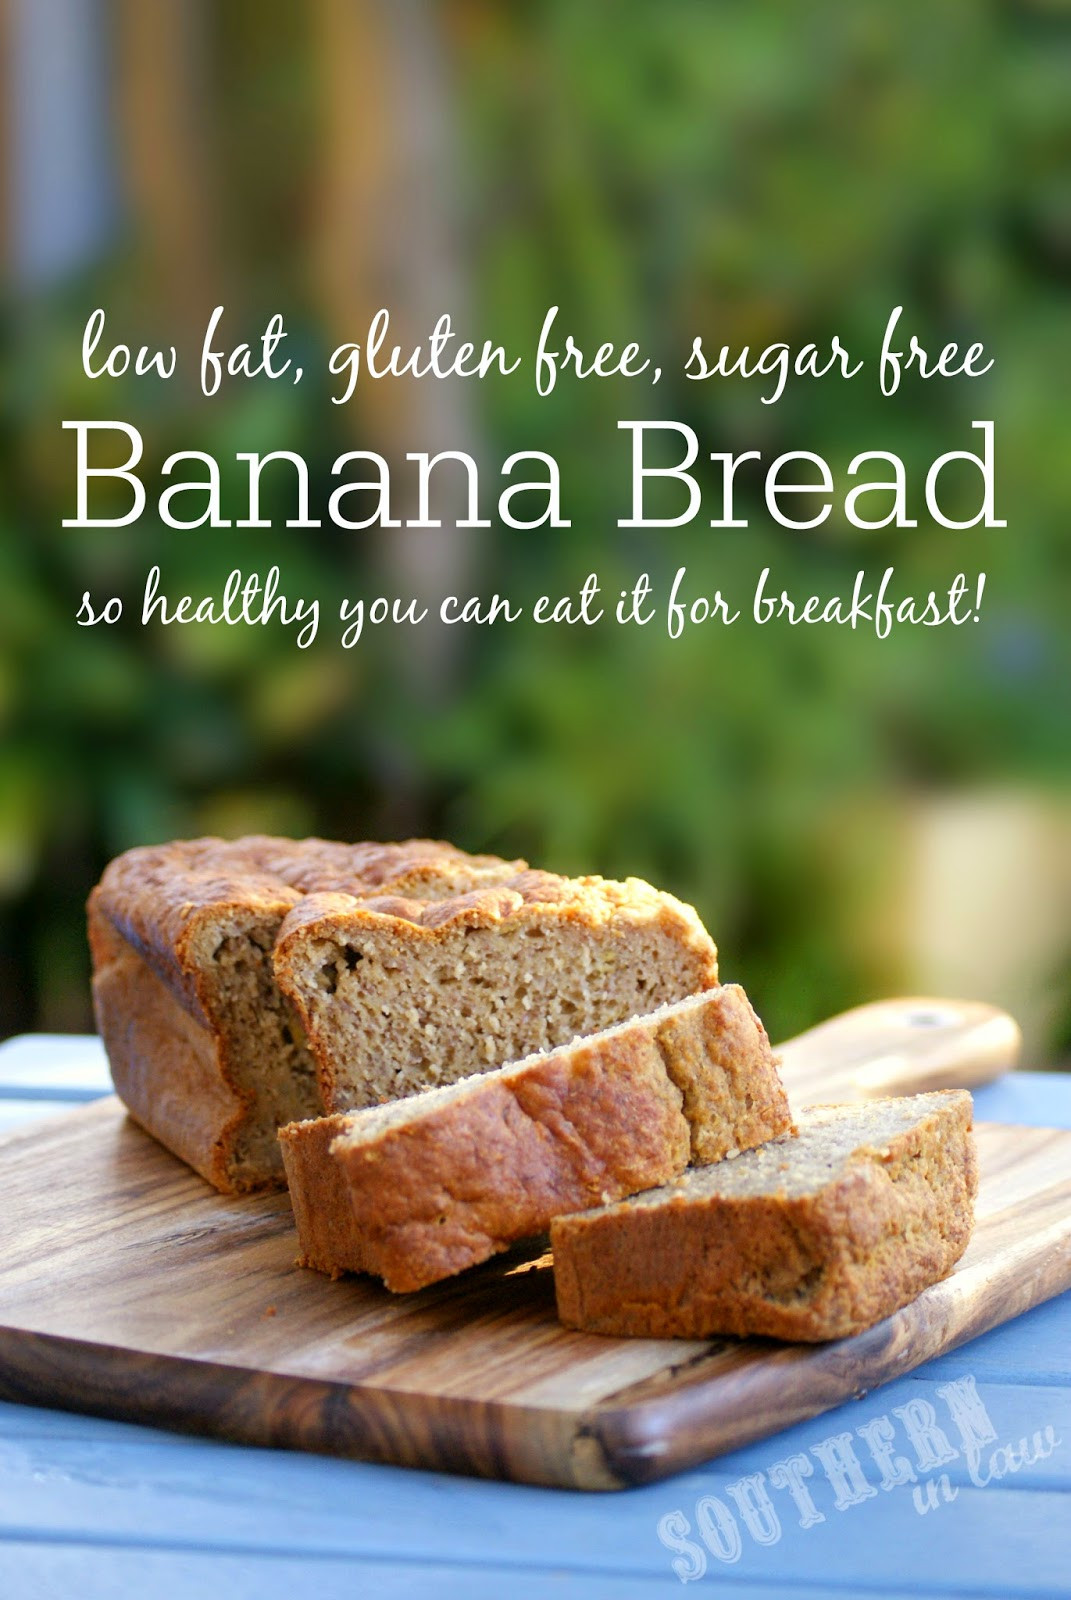 Healthy Banana Recipes For Breakfast  Southern In Law Recipe The Best Healthy Banana Bread